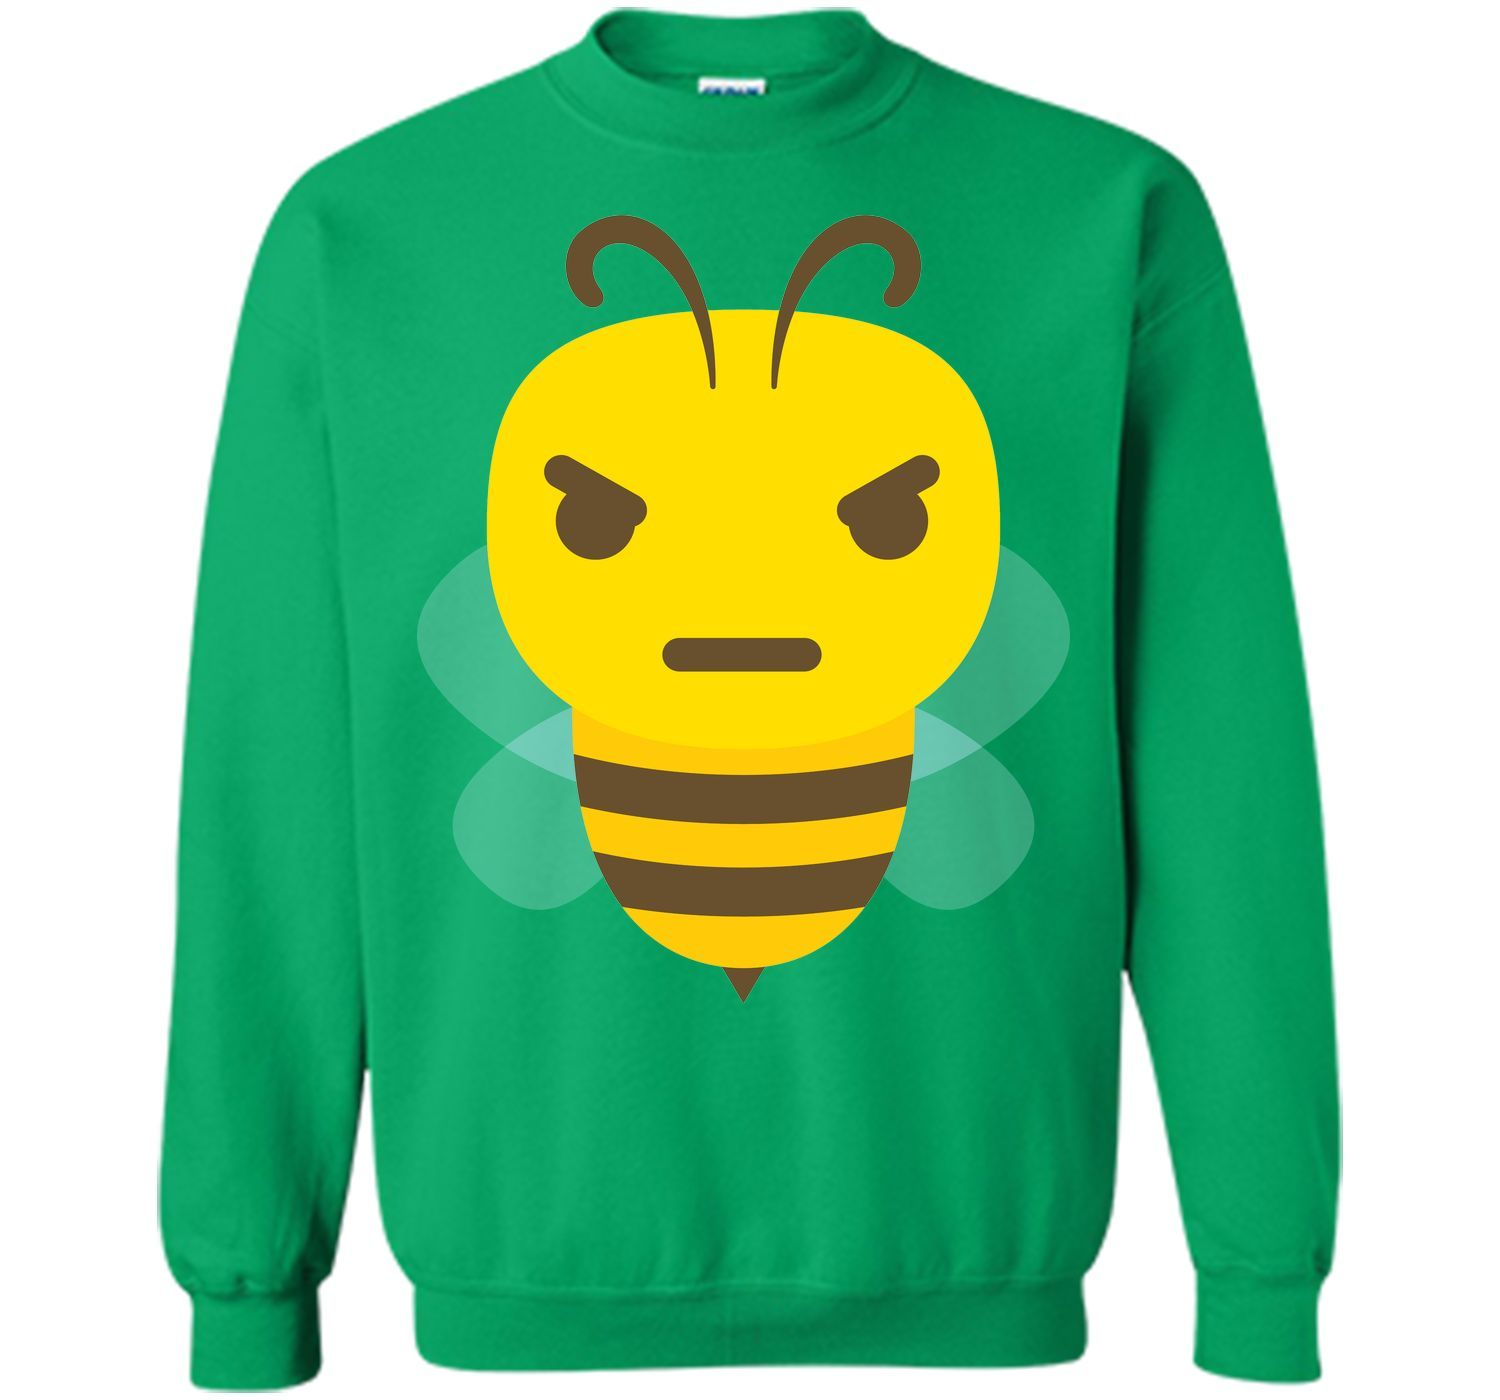 Bee Emoji Angry and Mean Look T-Shirt | Products